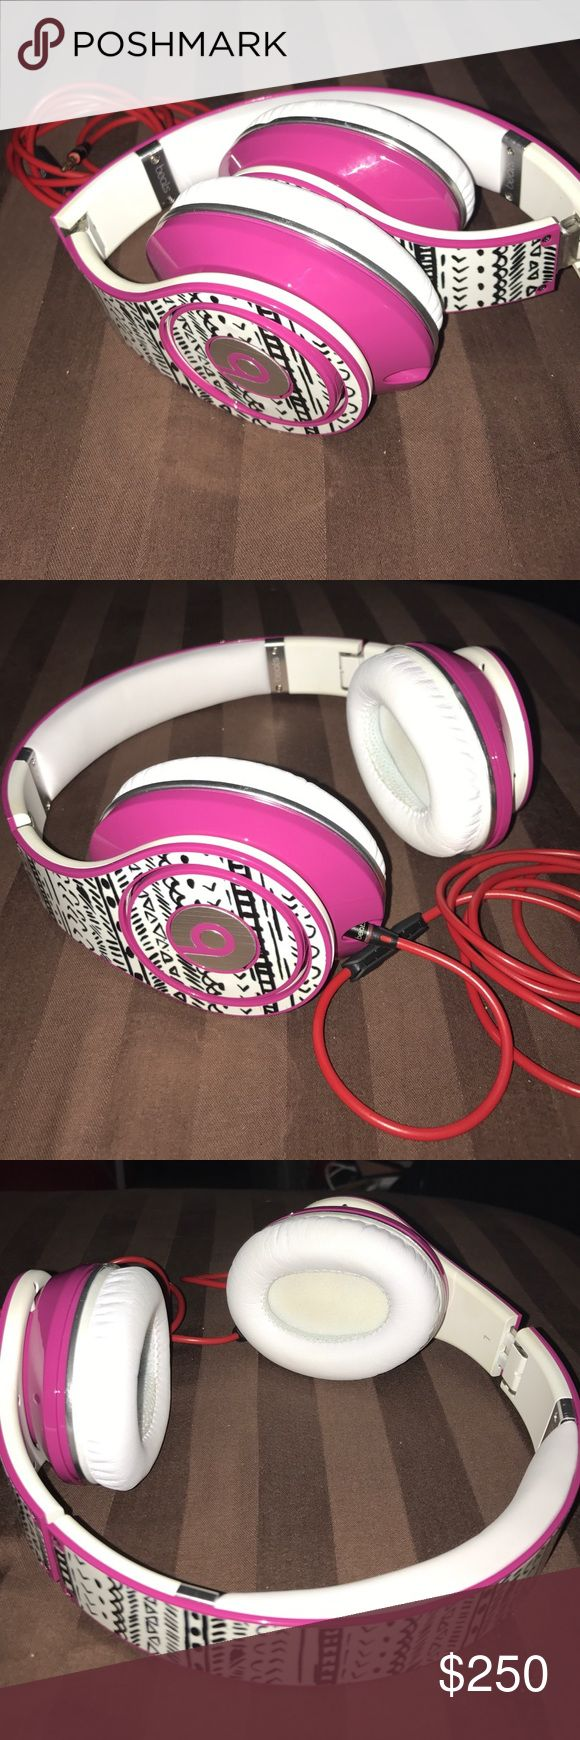 Beats studio headphones w/ wildflower decal AMAZING headphones, I just never use them. The decals can be taken off. Very pretty. Cheaper through 🅿️🅿️ Accessories